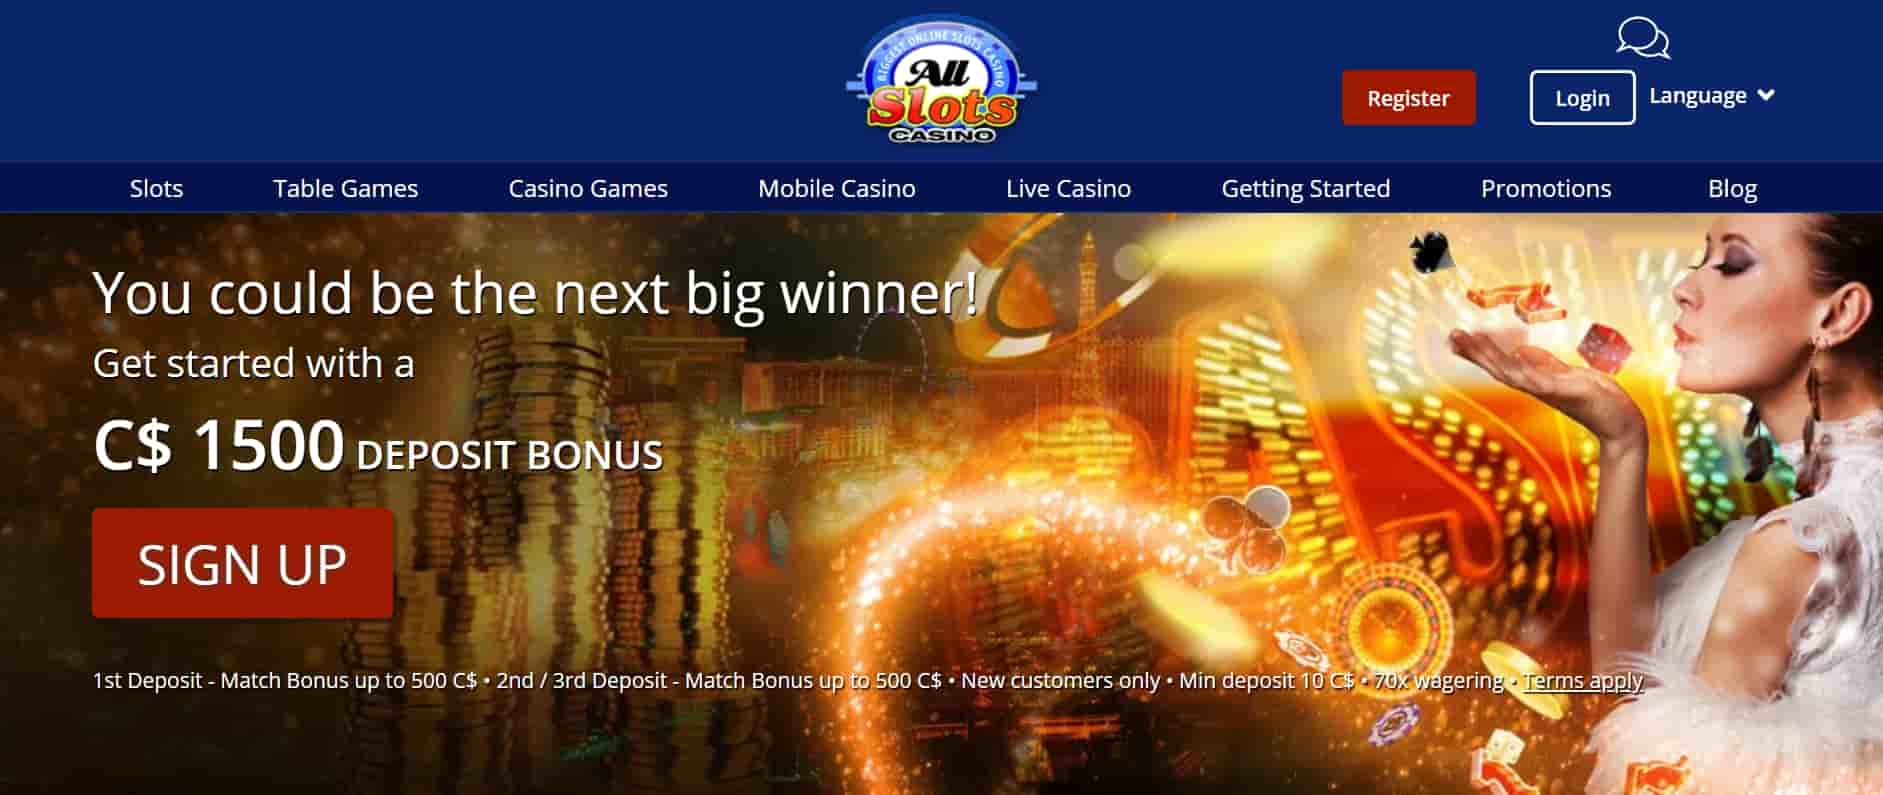 All slots online casino Canada